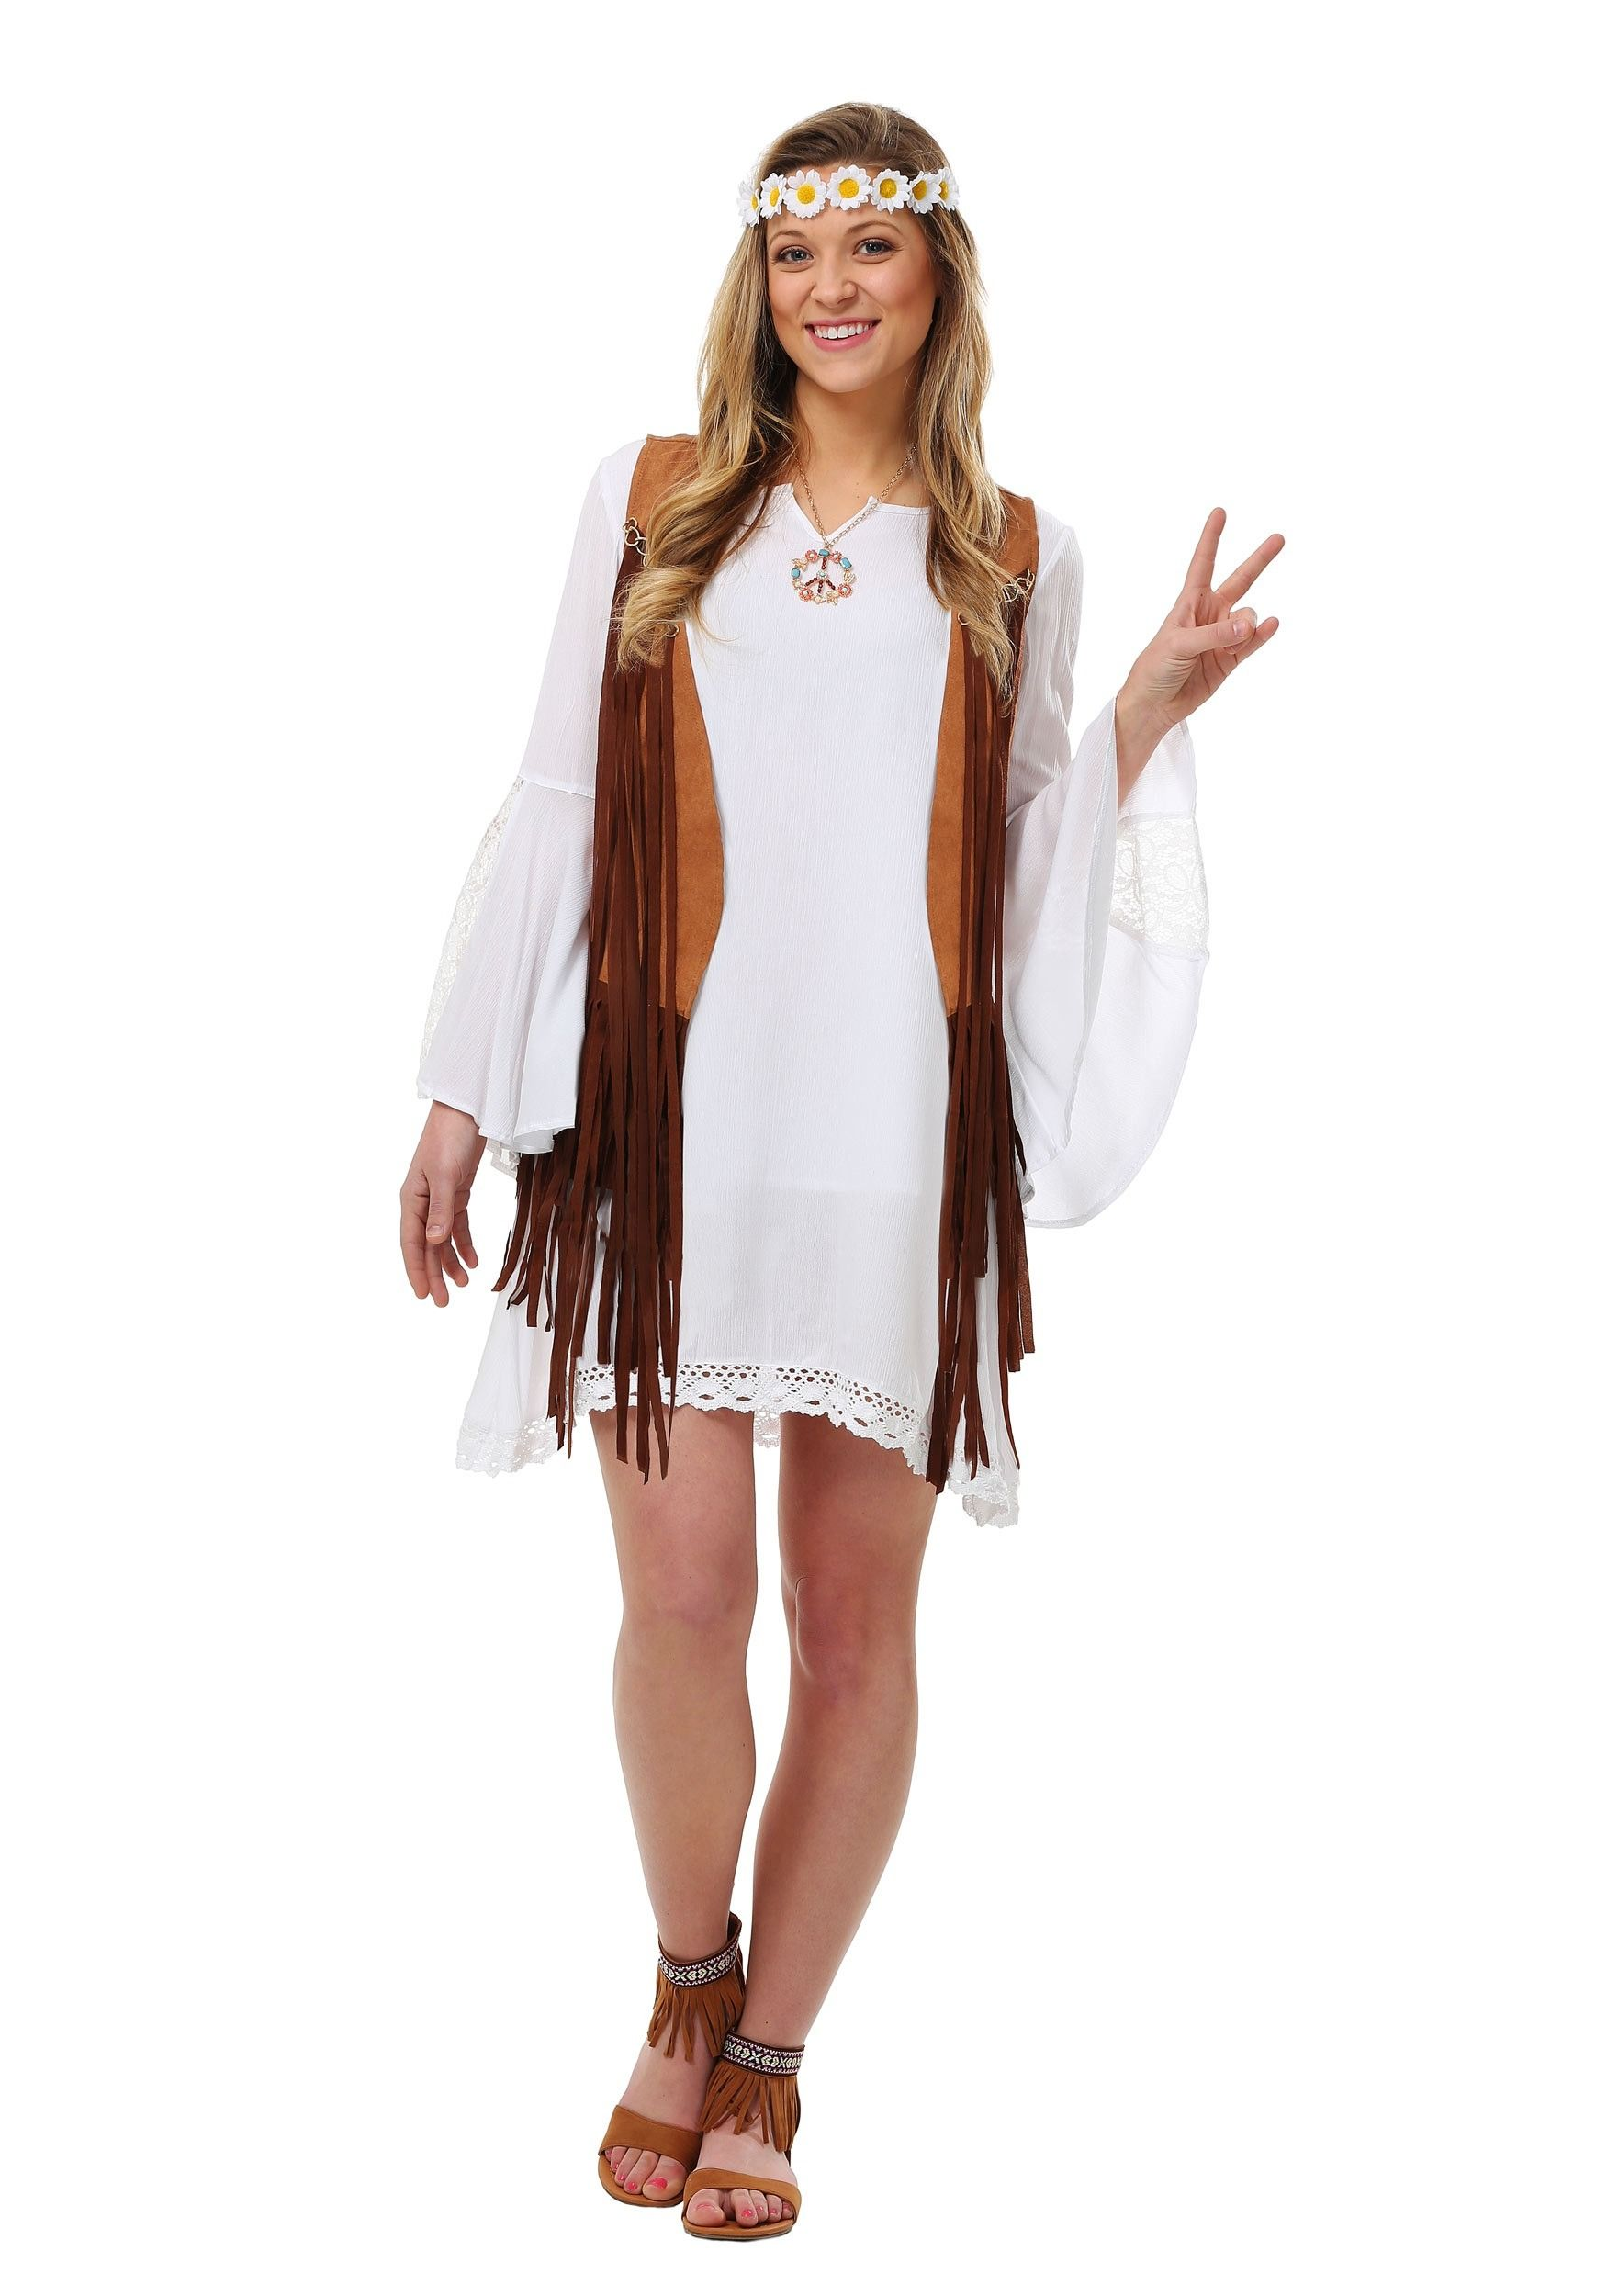 Disco hippie halloween costumes halloweencostumes disco hippie halloween costumes halloweencostumes solutioingenieria Gallery